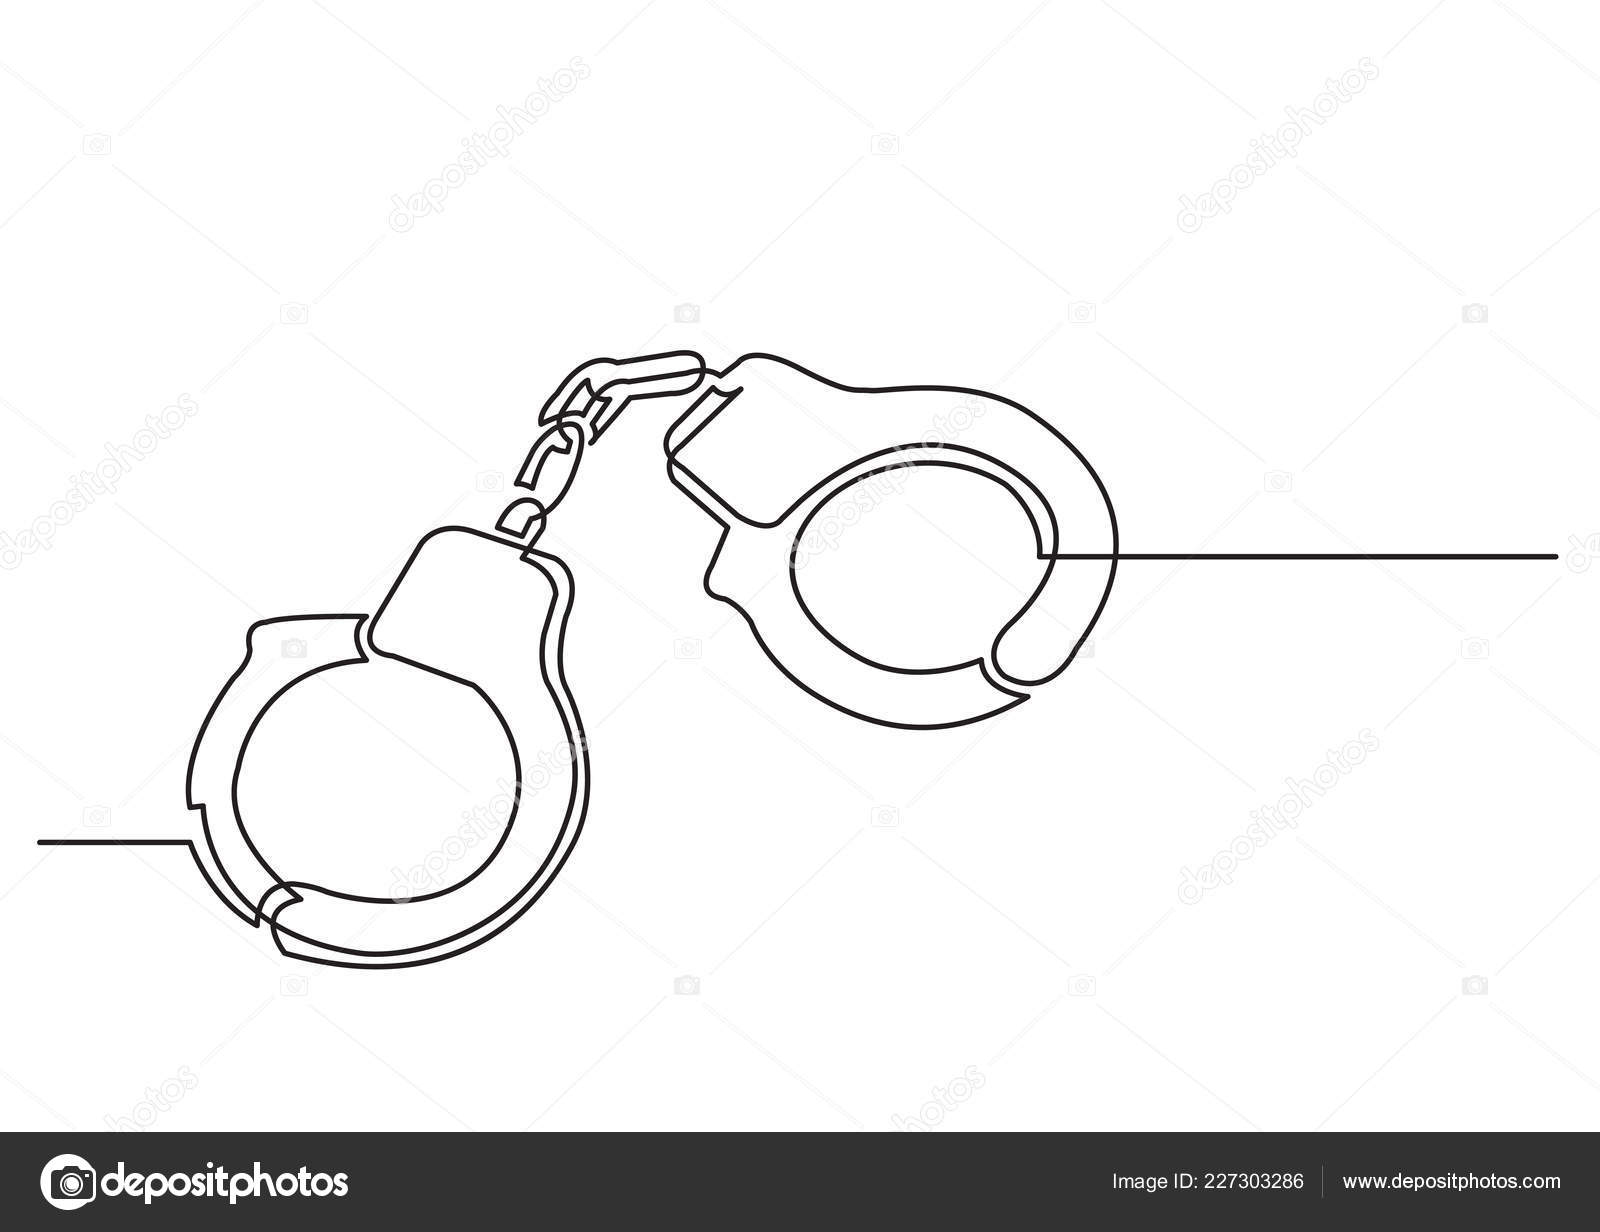 hight resolution of one line drawing isolated vector object handcuffs stock vector